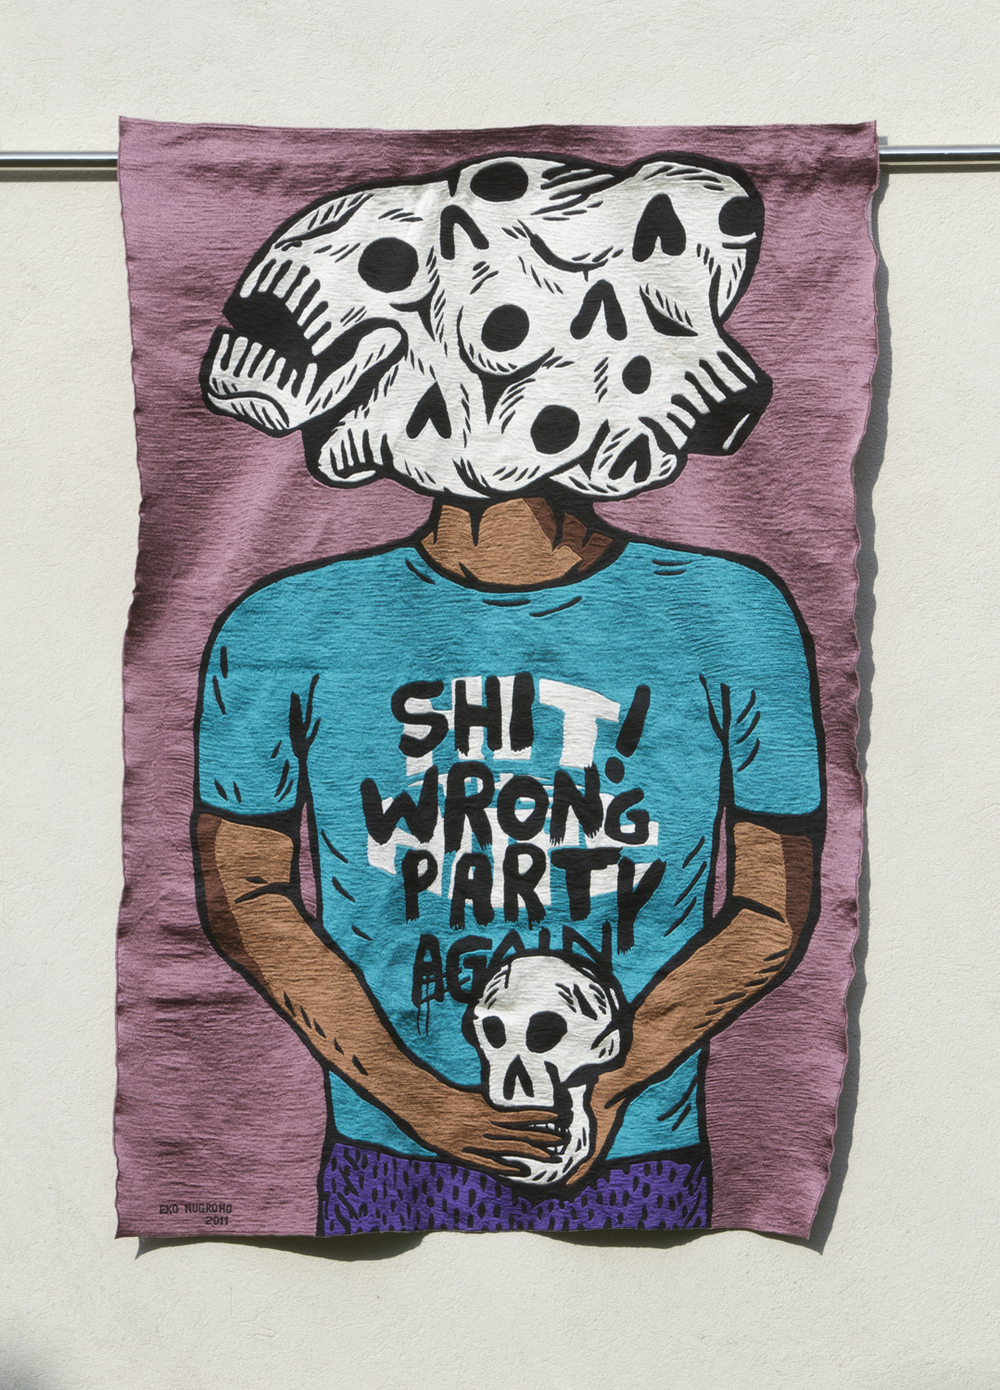 Eko Nugroho   Shit Wrong Party Again , 2011 embroidered rayon thread on fabric backing 53.94 x 37.4 inches 137 x 95 cm